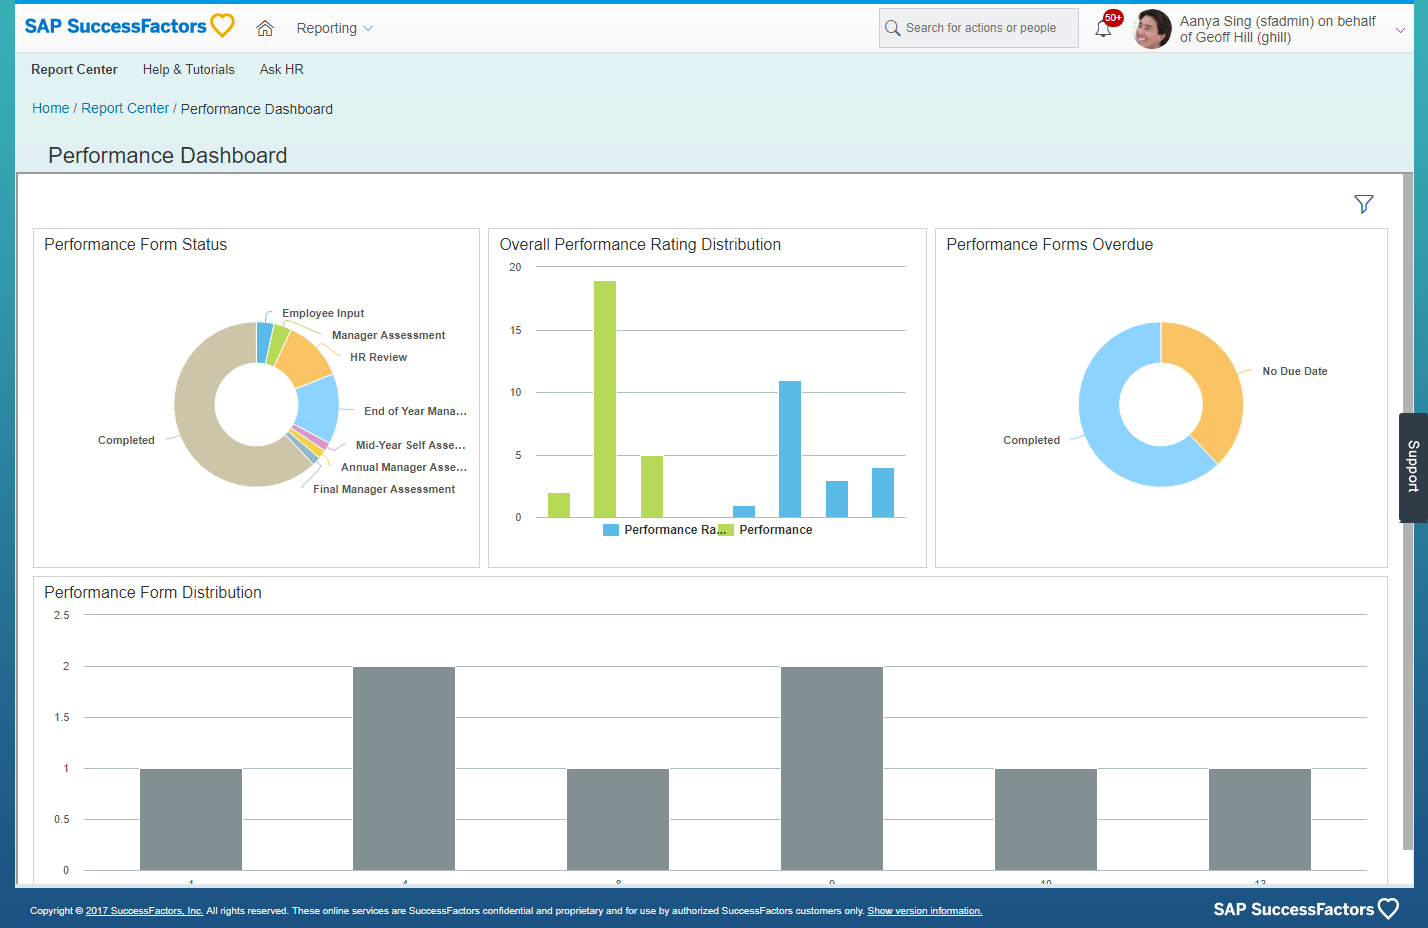 SAP SuccessFactors - performance dashboard